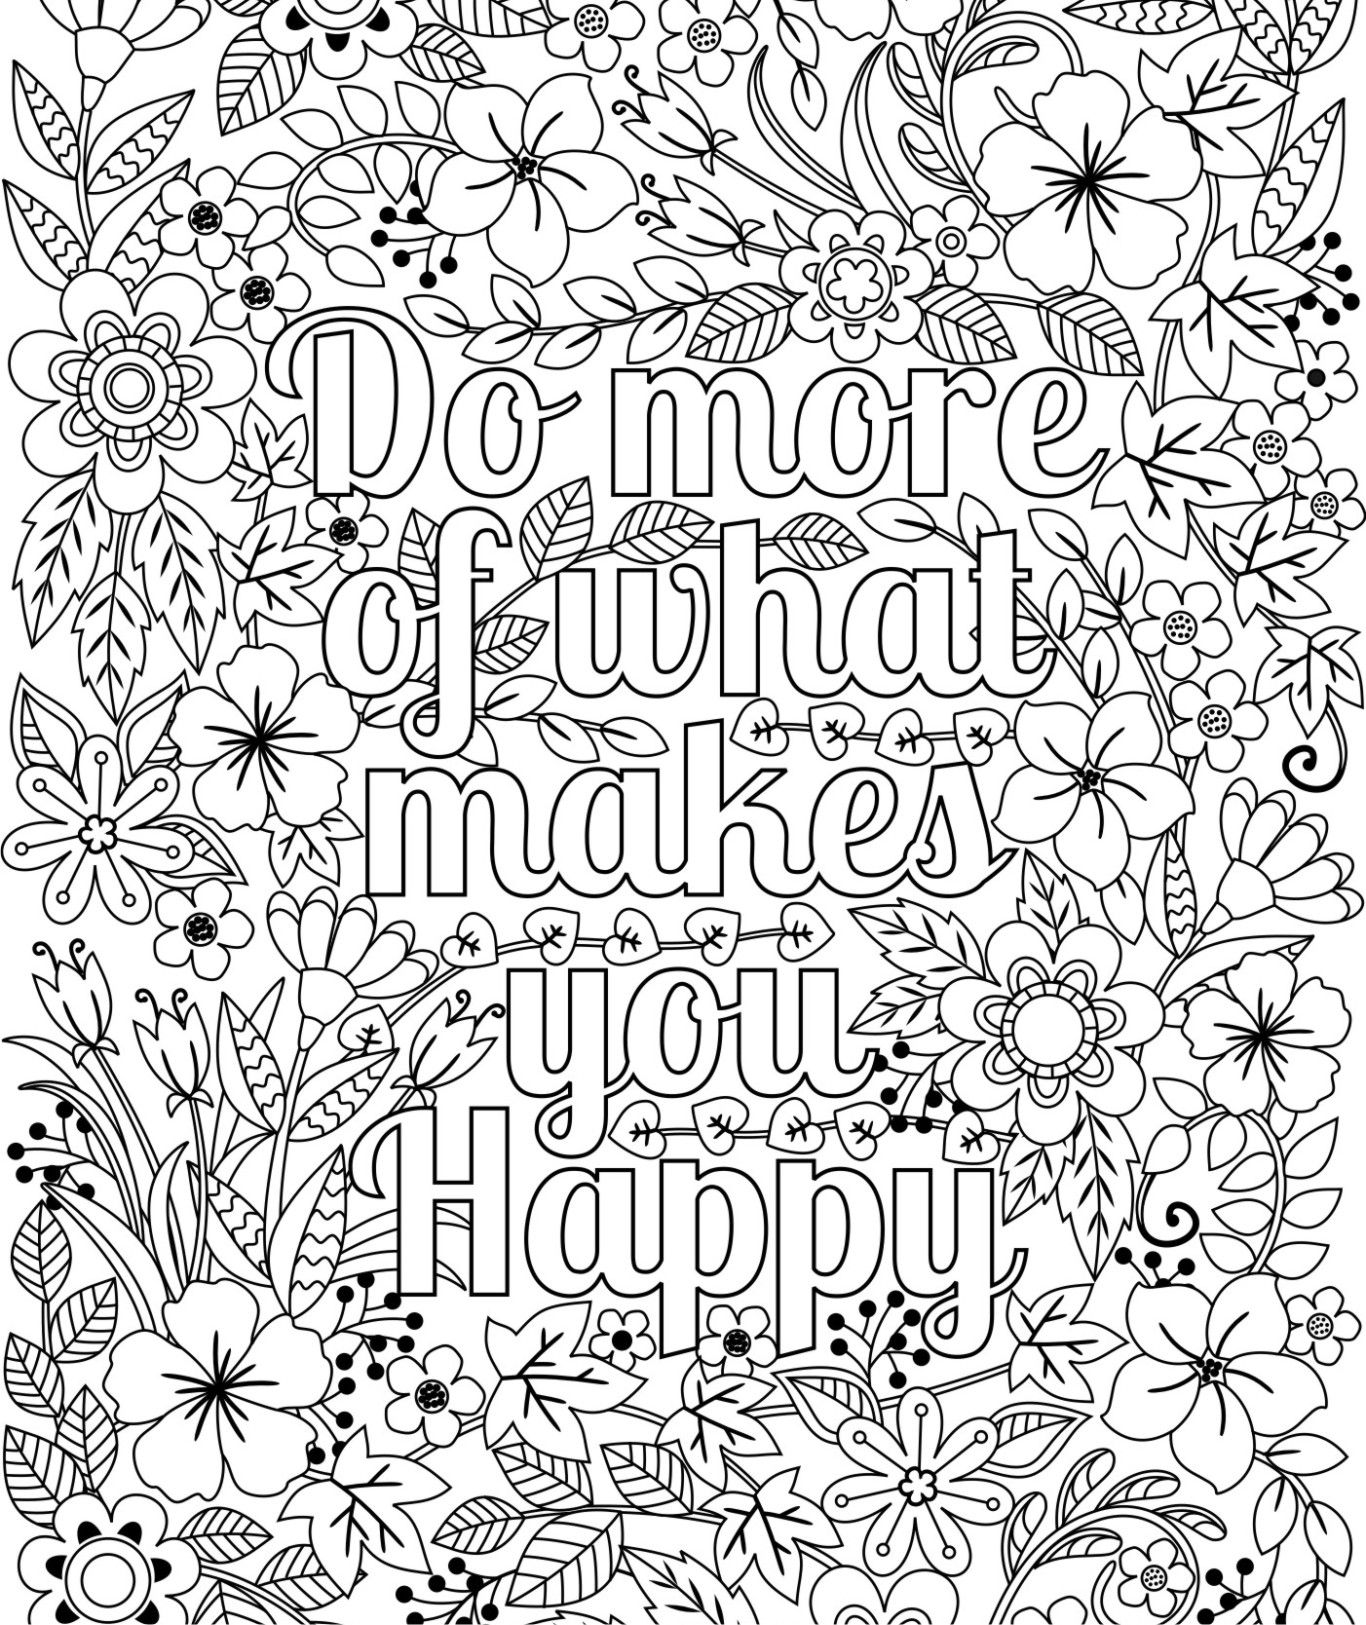 printable u0027do more of what makes you happy u0027 flower design coloring